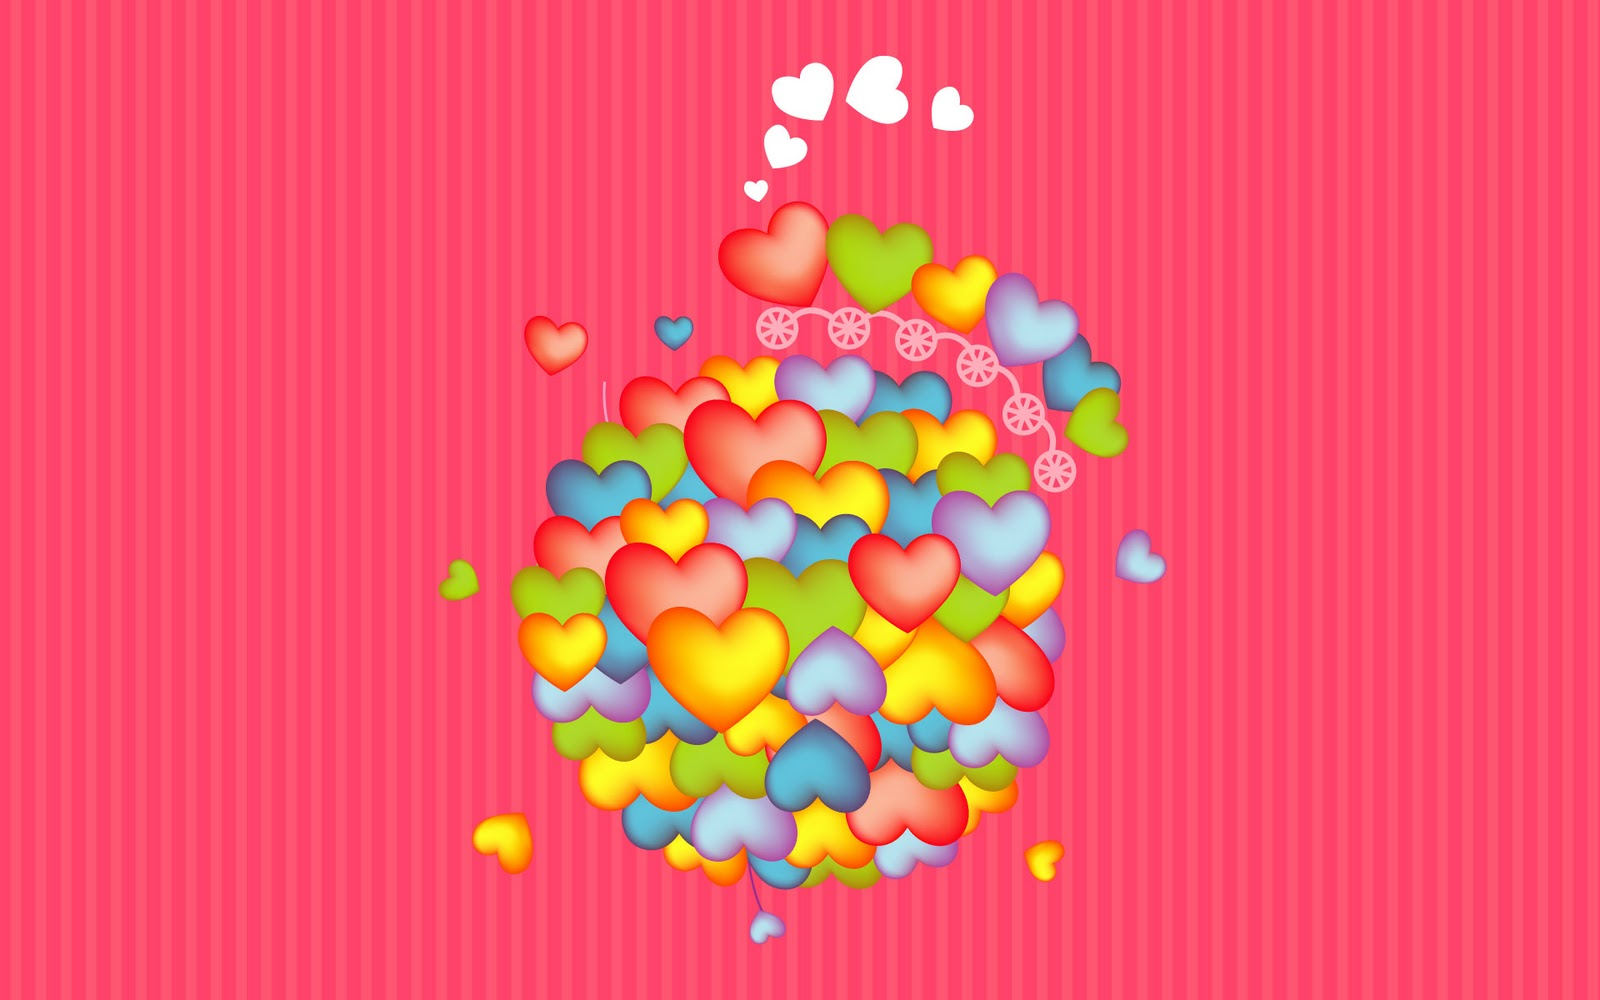 Free download valentine screensavers image gallary free download